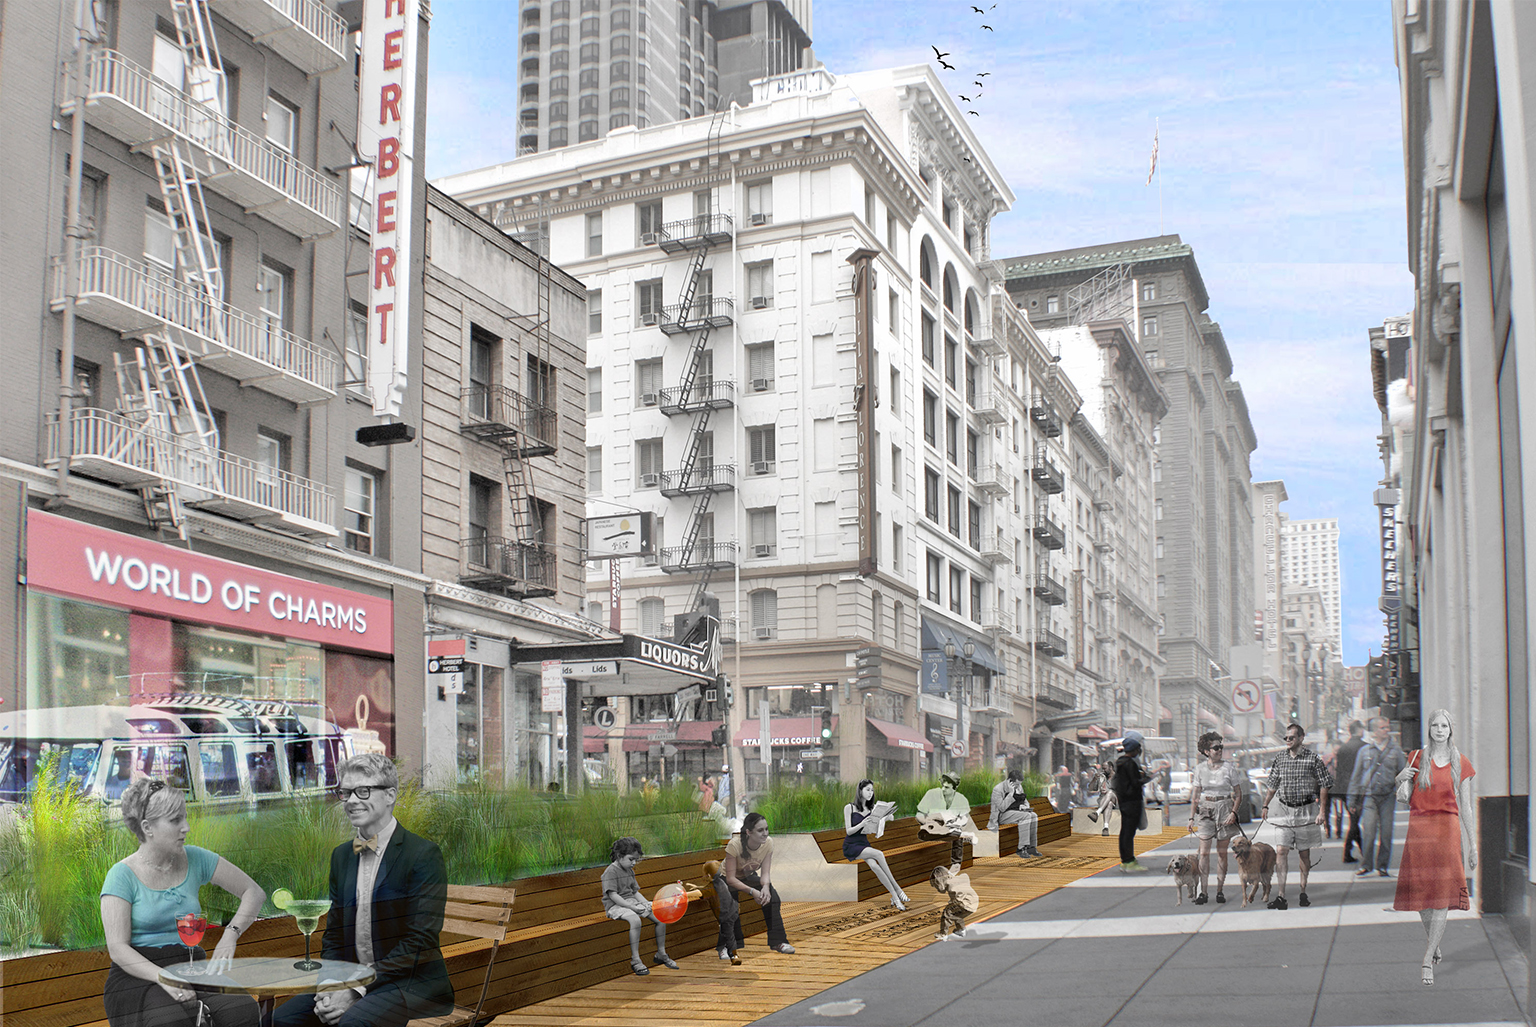 Union Square BID - Powell Street